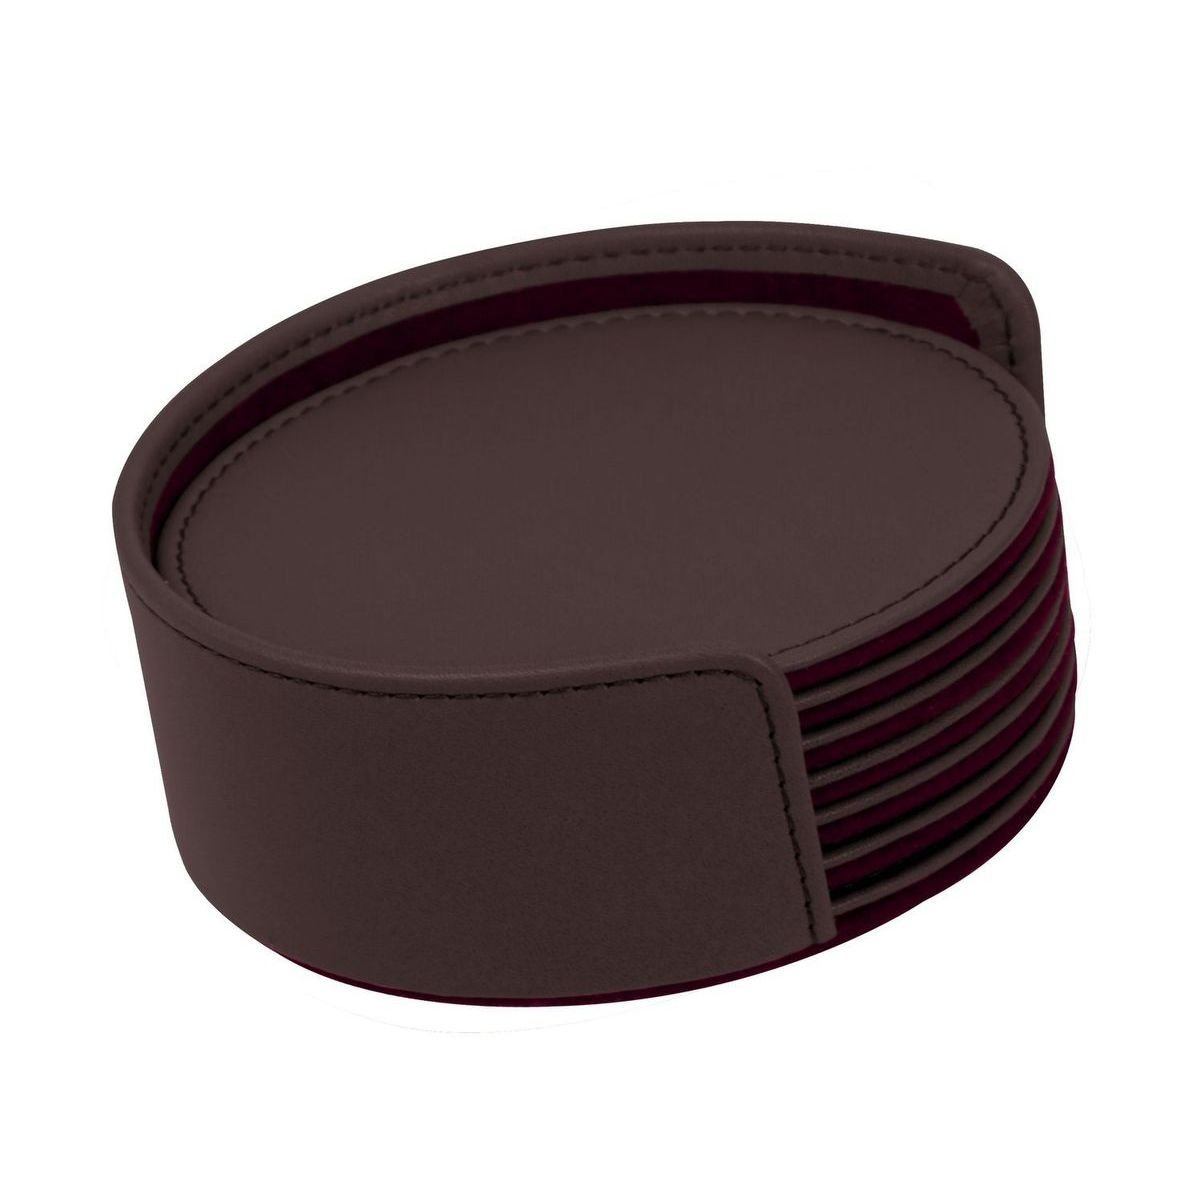 Burgundy Round Smooth Cow Leather  6 PC Coaster Set   WAUCUSTPM1357